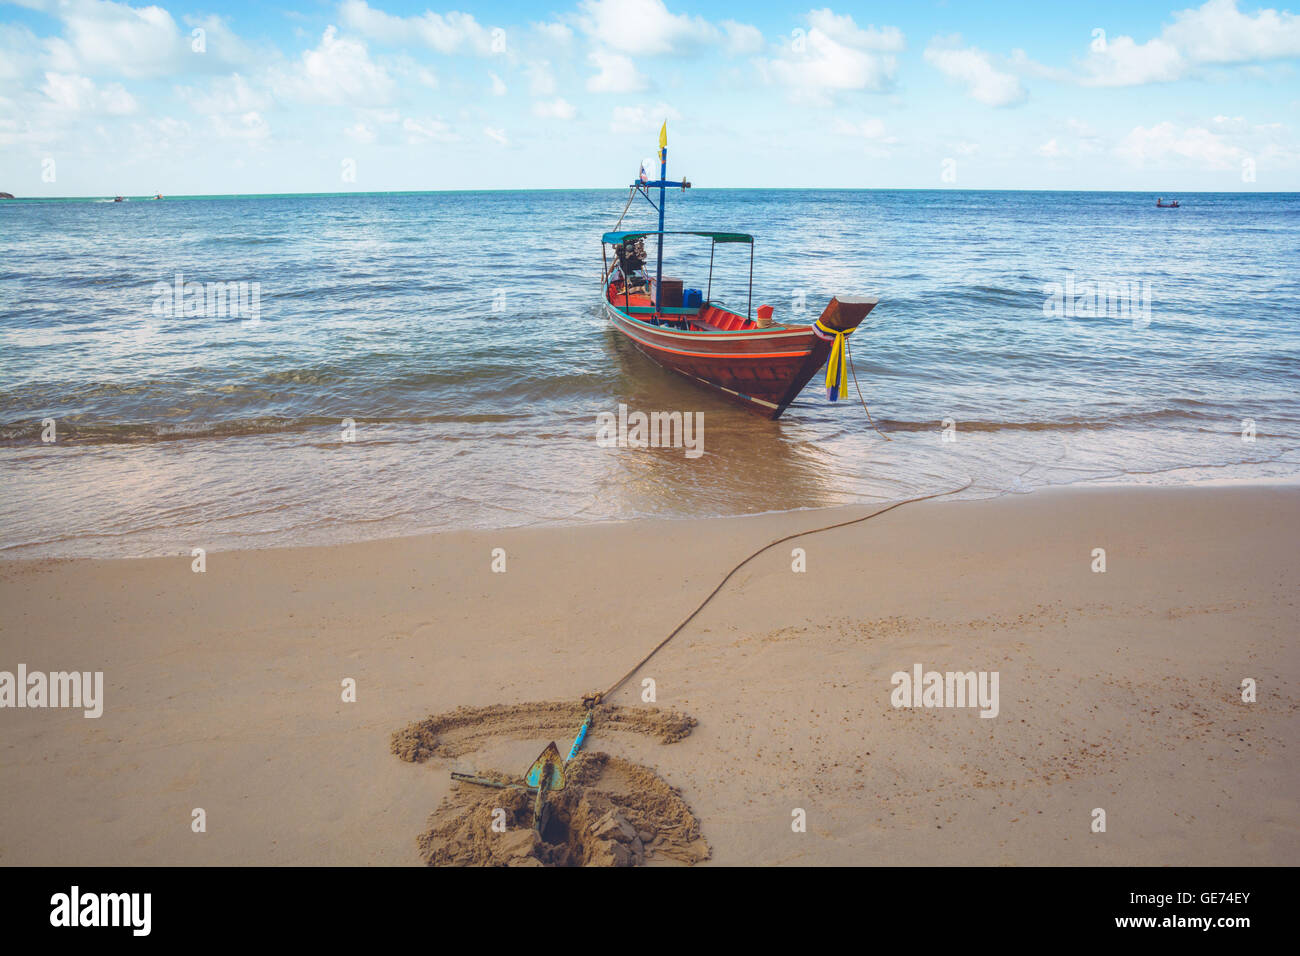 A boat is anchored at Bottle Beach, Koh Pha Ngan, Thailand - Stock Image